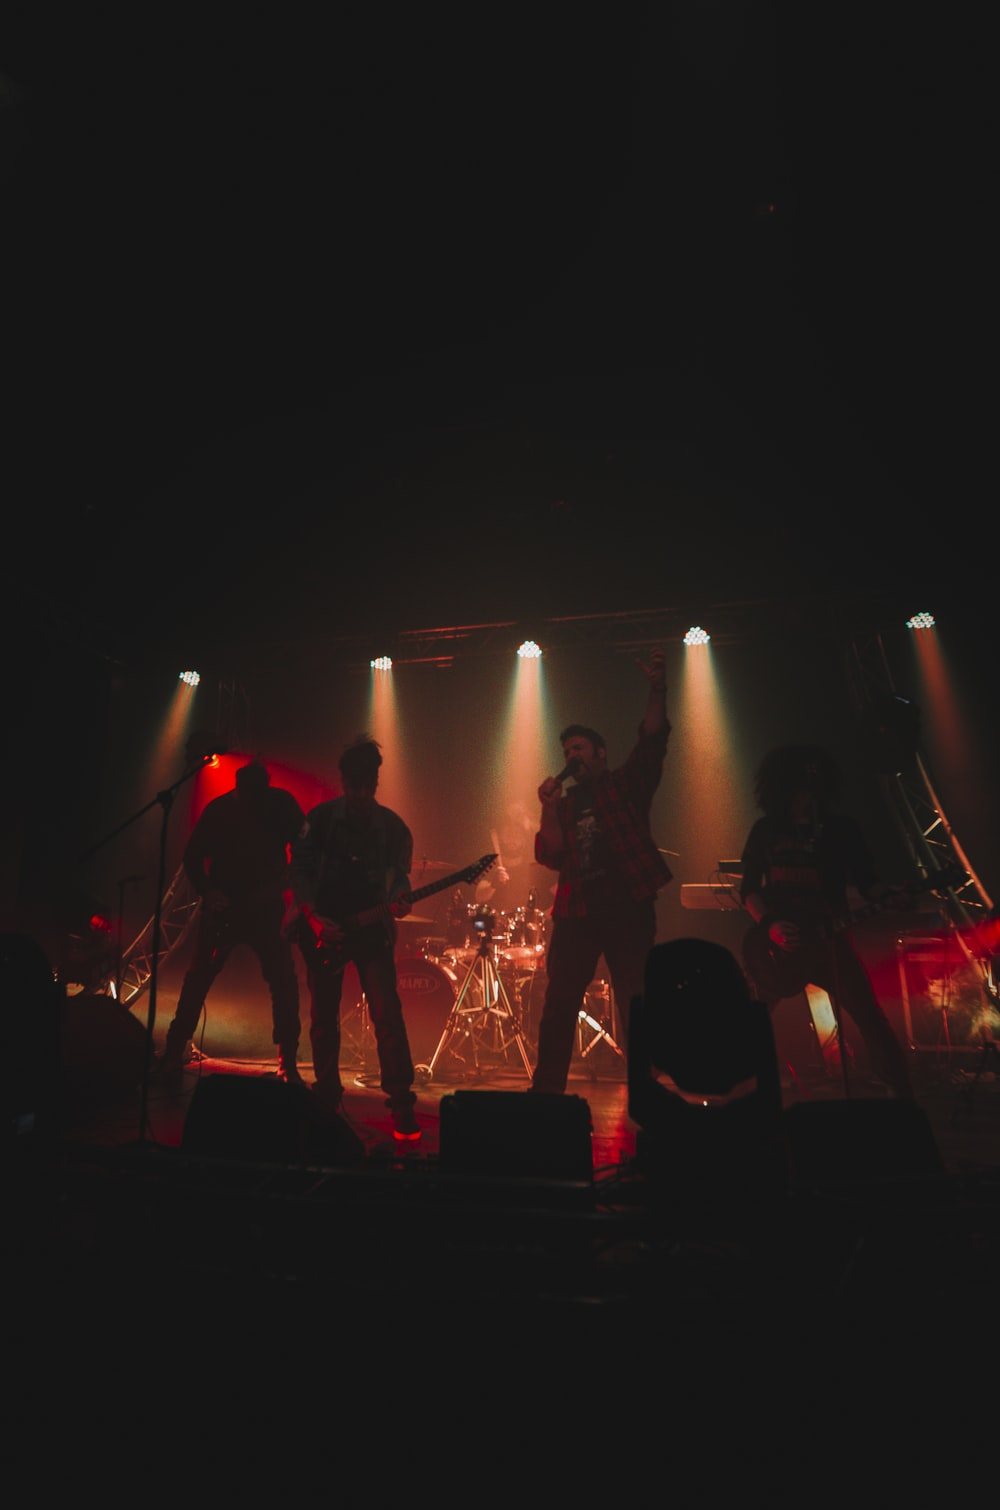 group of people playing musical instruments on stage